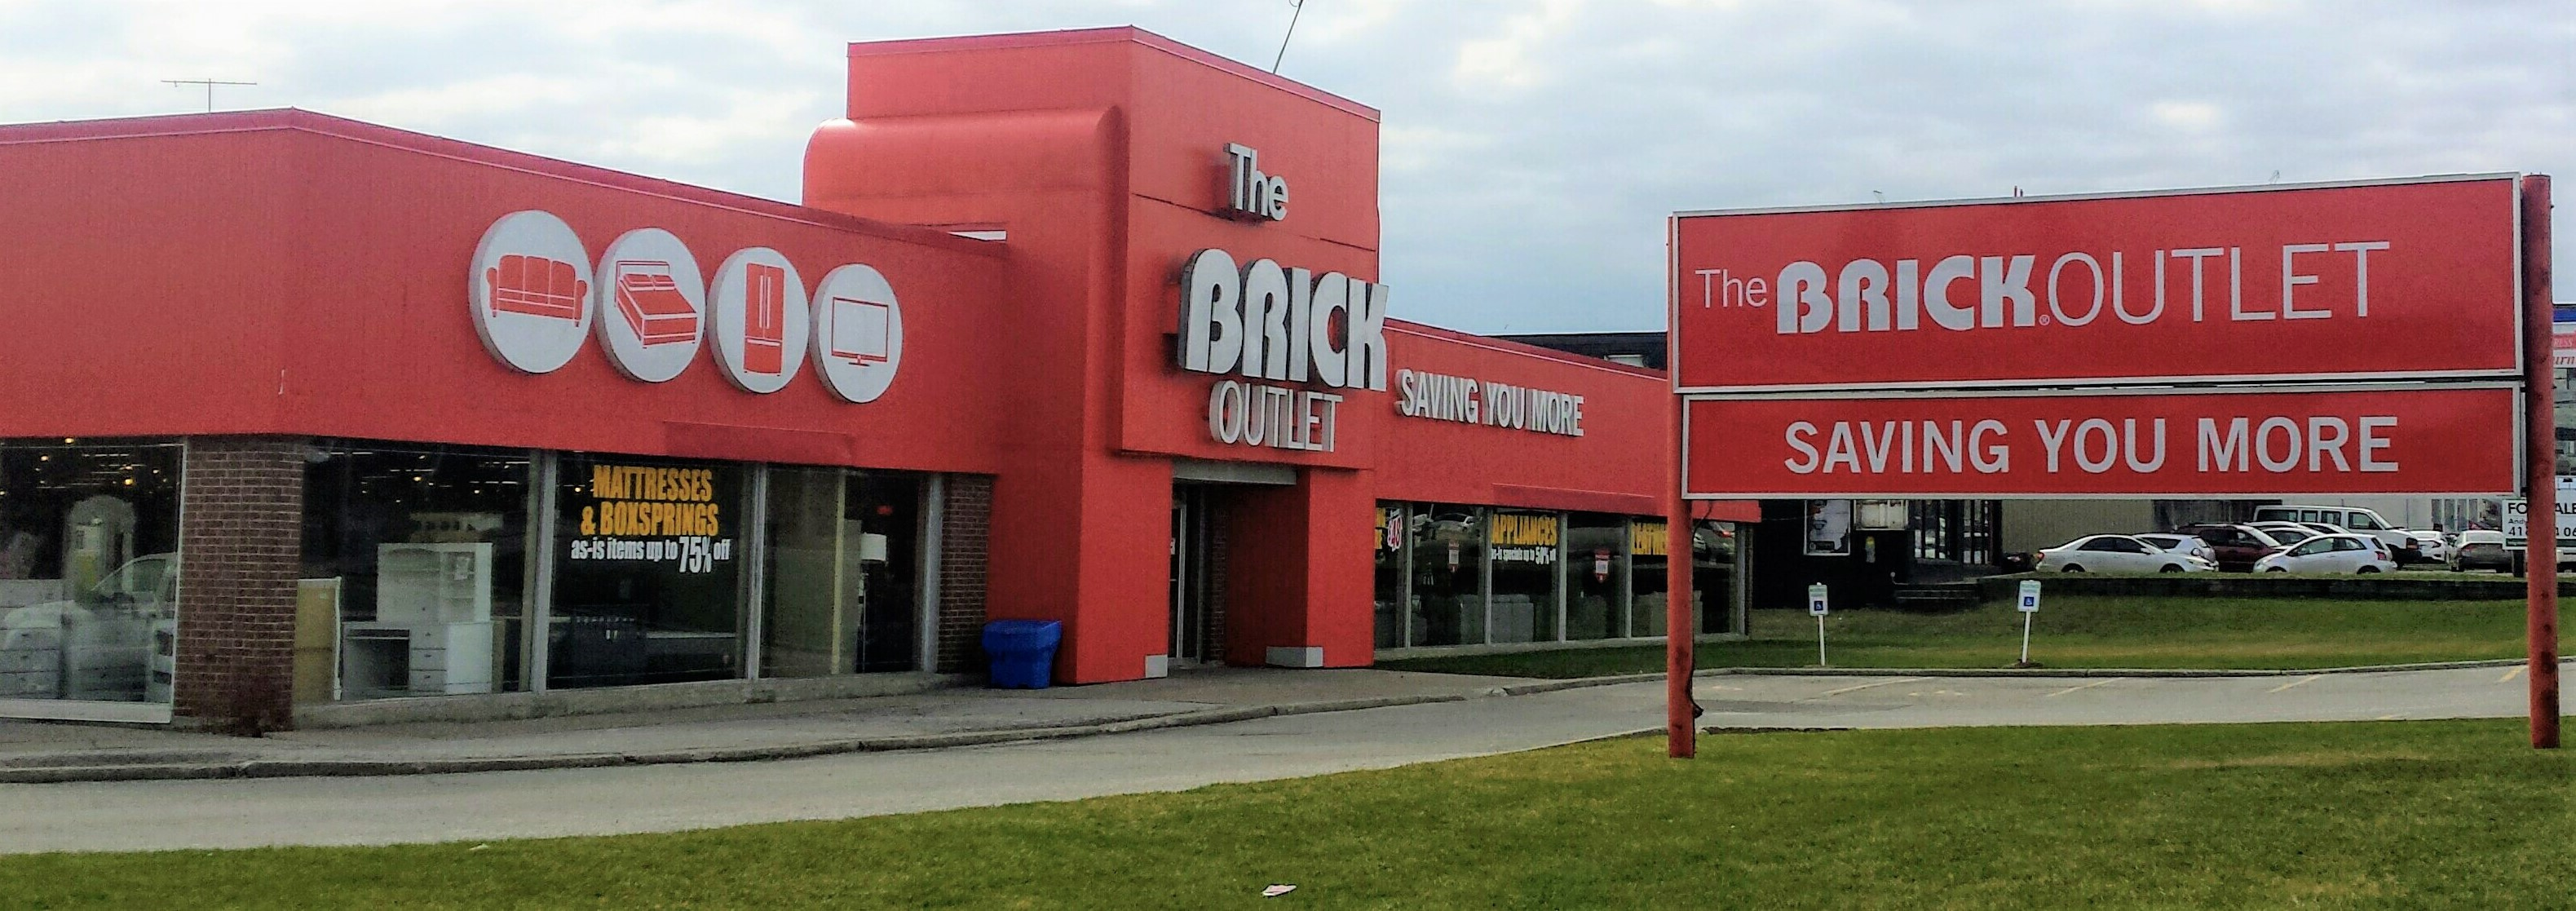 The Brick Outlet